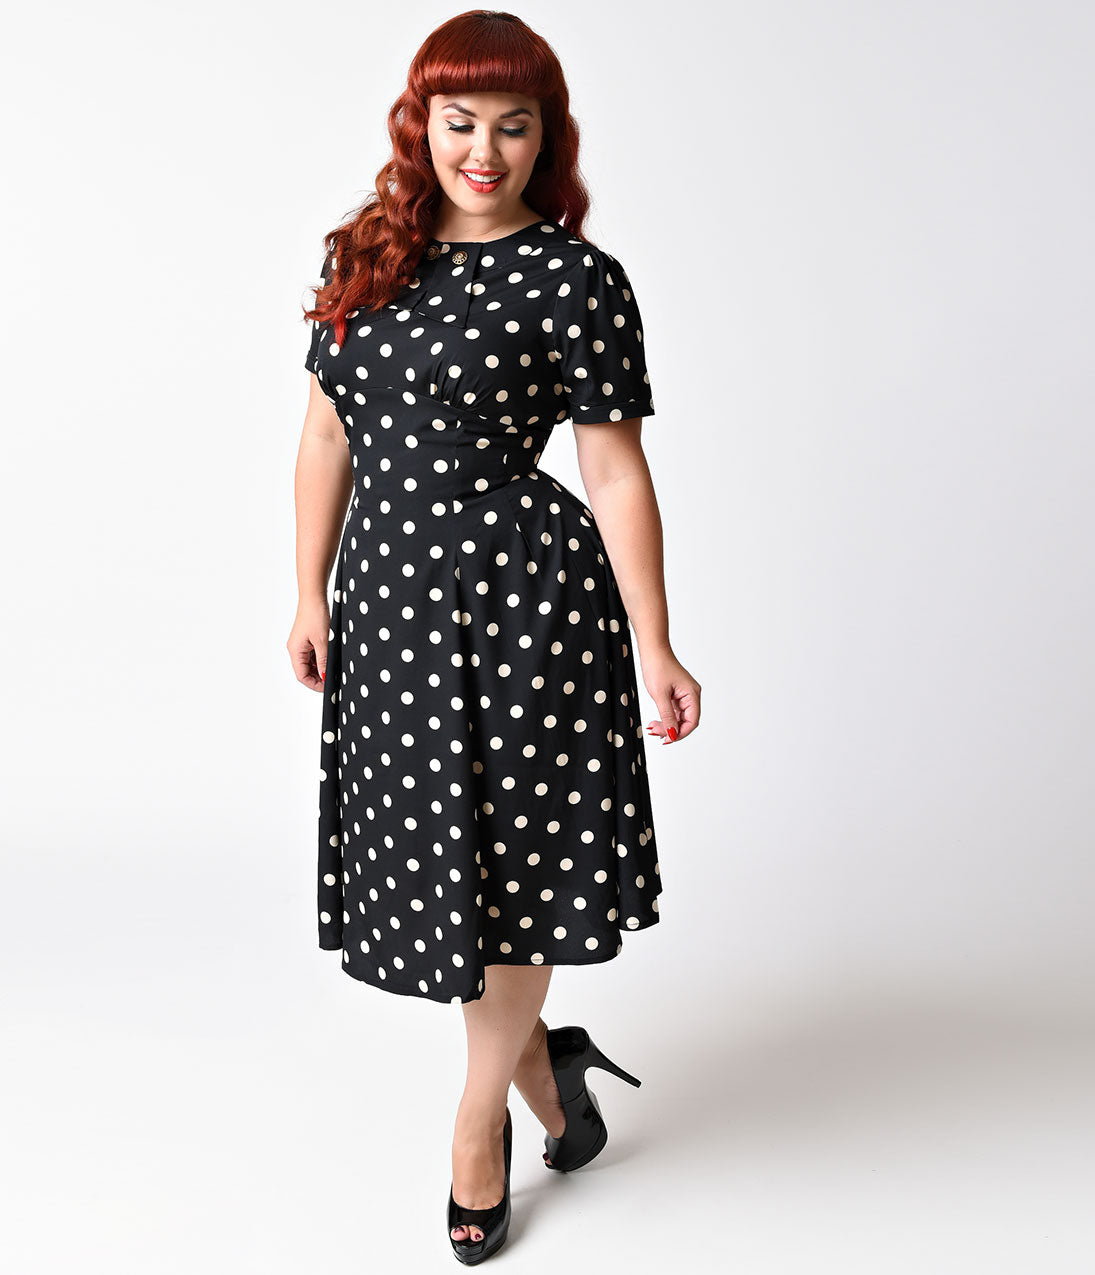 1940s 1950s pinup dresses for sale. Black Bedroom Furniture Sets. Home Design Ideas